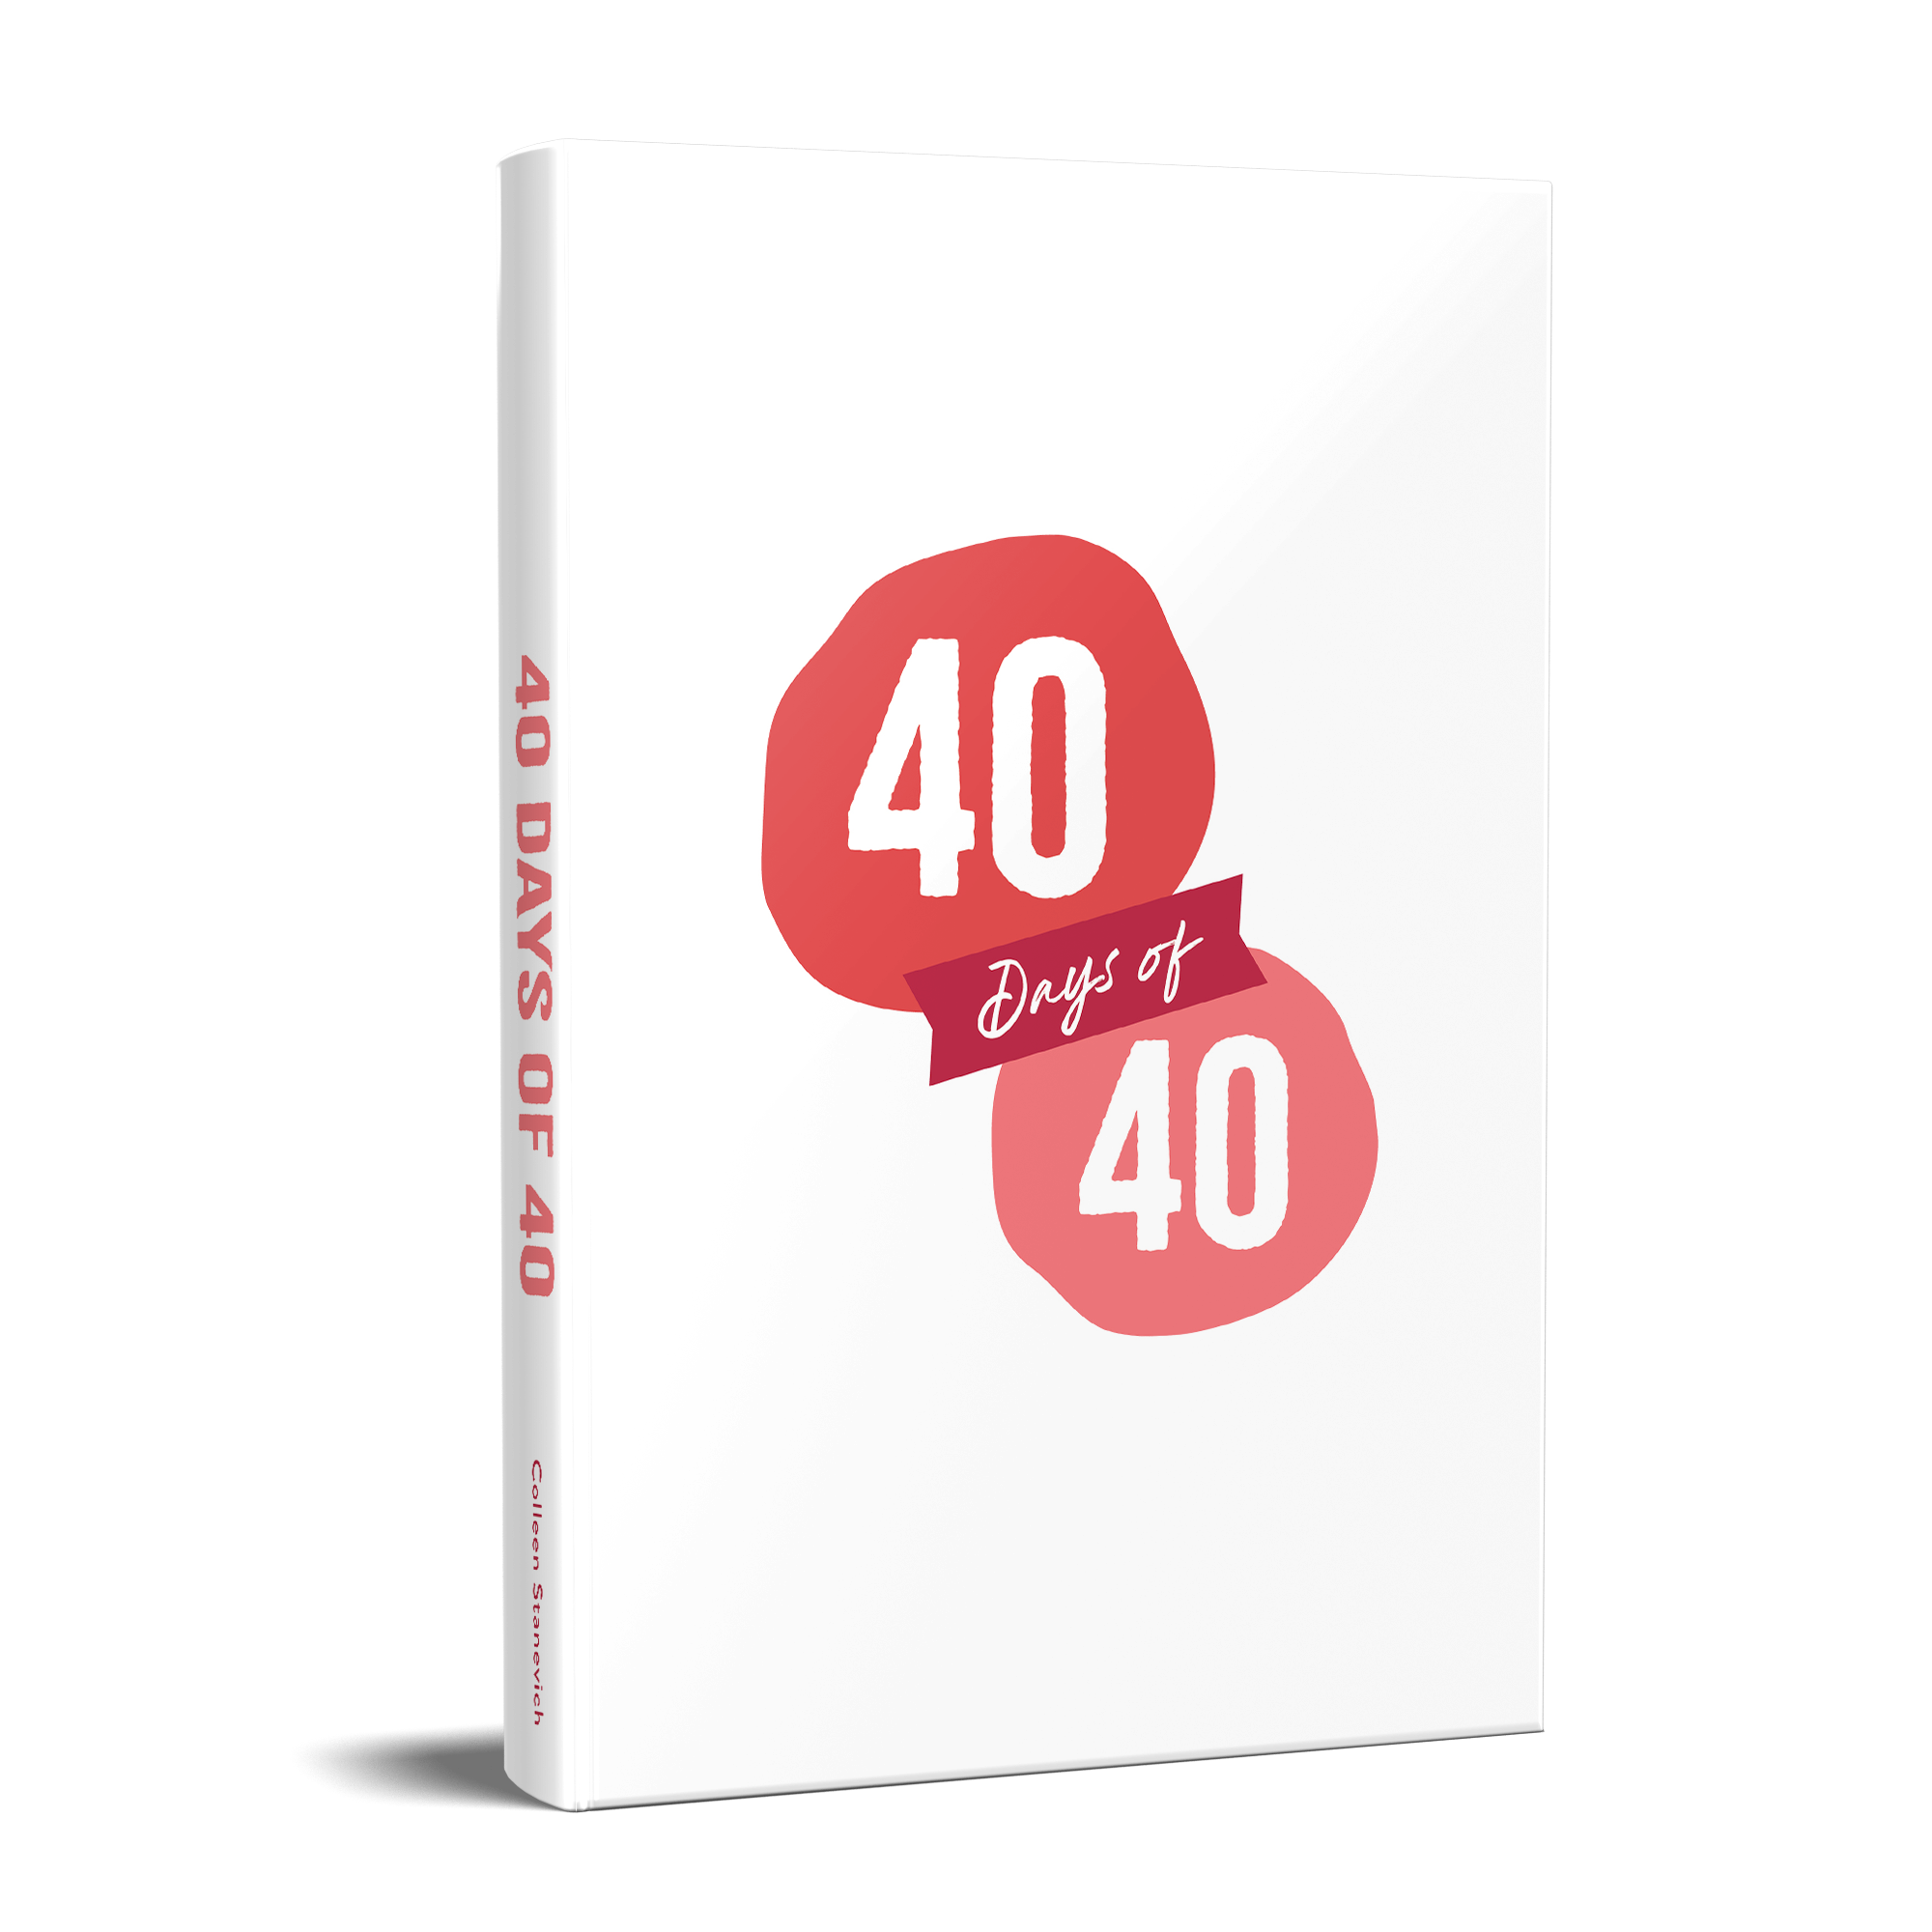 40 Days of 40 Journal